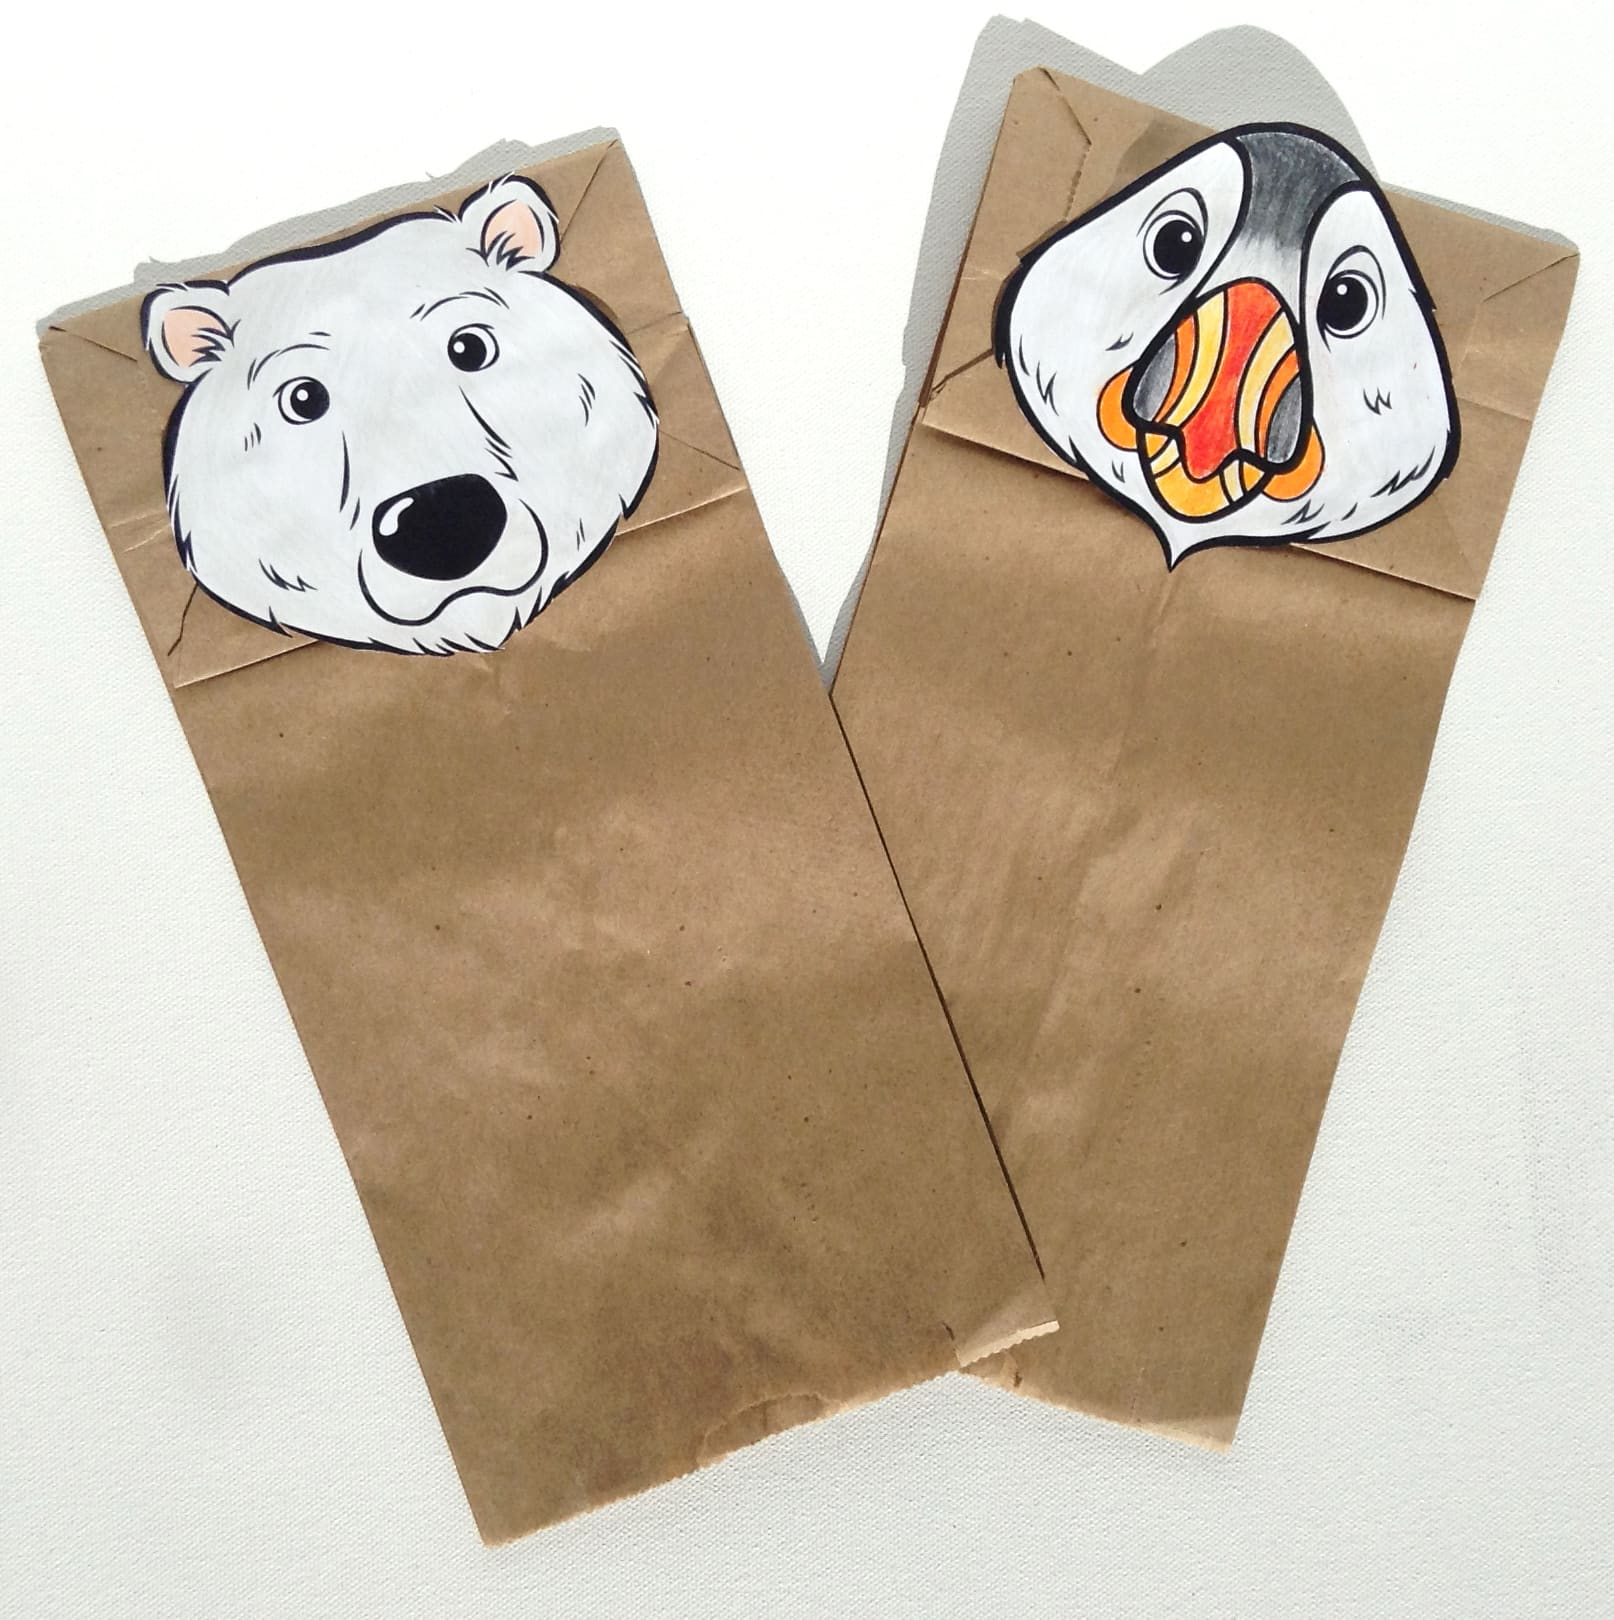 A paper polar bear and puffin head glued on to a paper bag